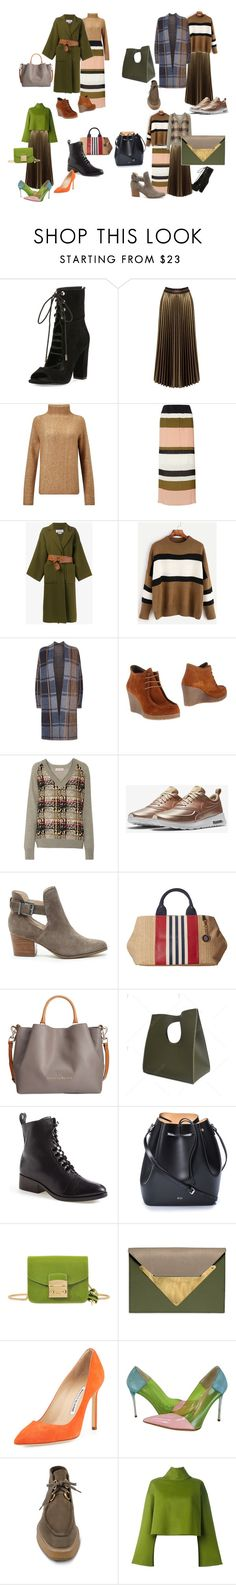 """""""Две юбки и..."""" by mbits ❤ liked on Polyvore featuring Kendall + Kylie, Sans Souci, Samsøe & Samsøe, Dorothy Perkins, Loewe, SET, e(x)it, See by Chloé, NIKE and Sole Society"""